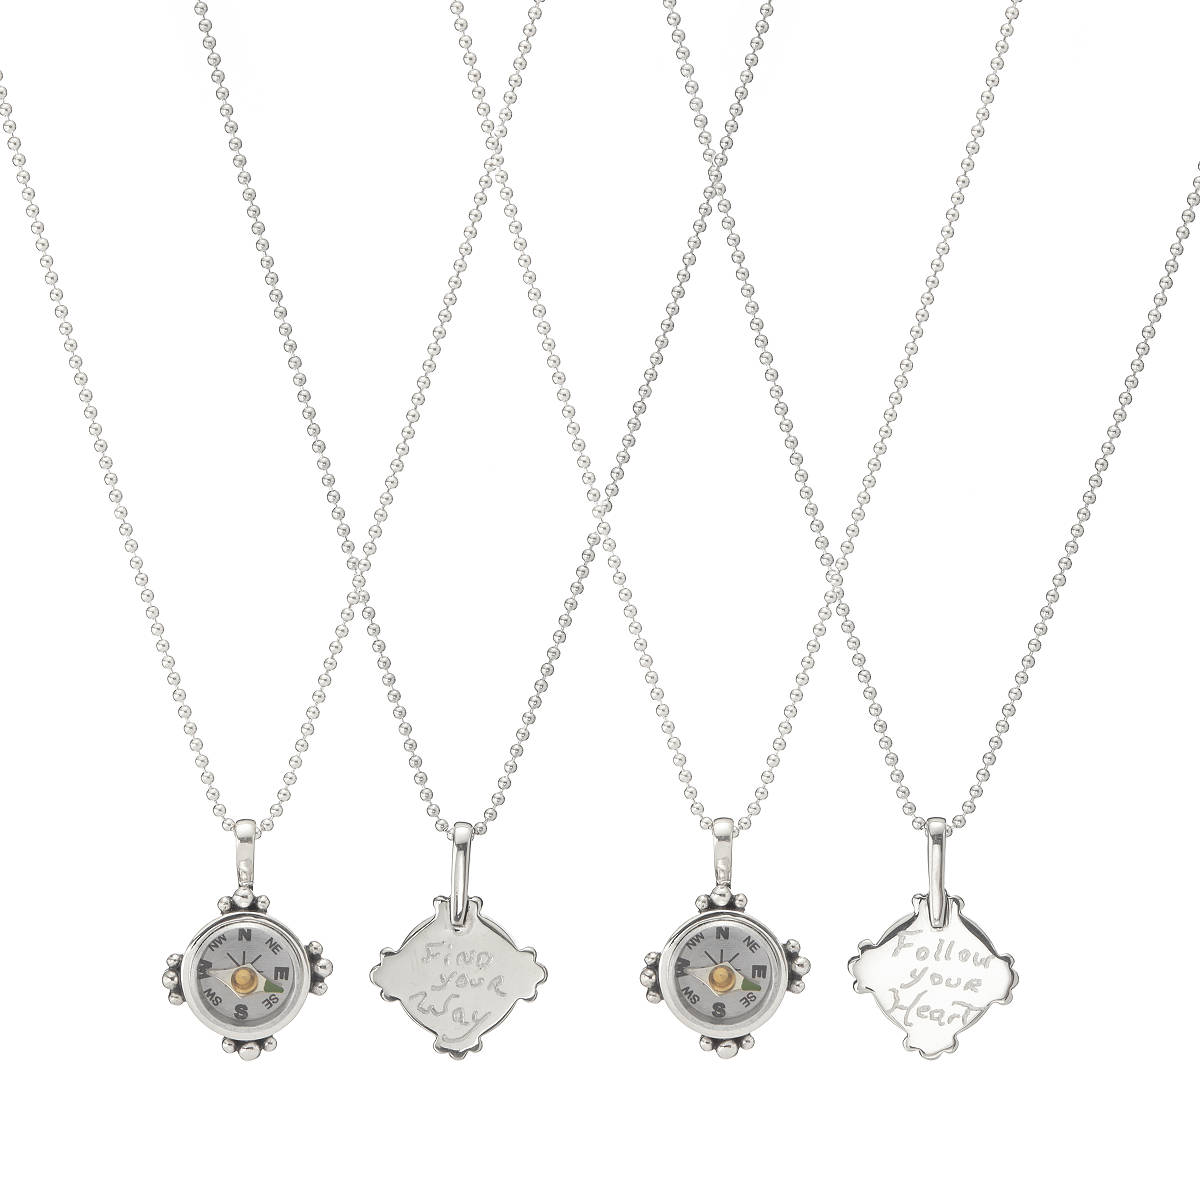 products kosann on global compass sapphire and cabochon silver chain sterling monica cabachon pendant moonstone rich belcher necklace